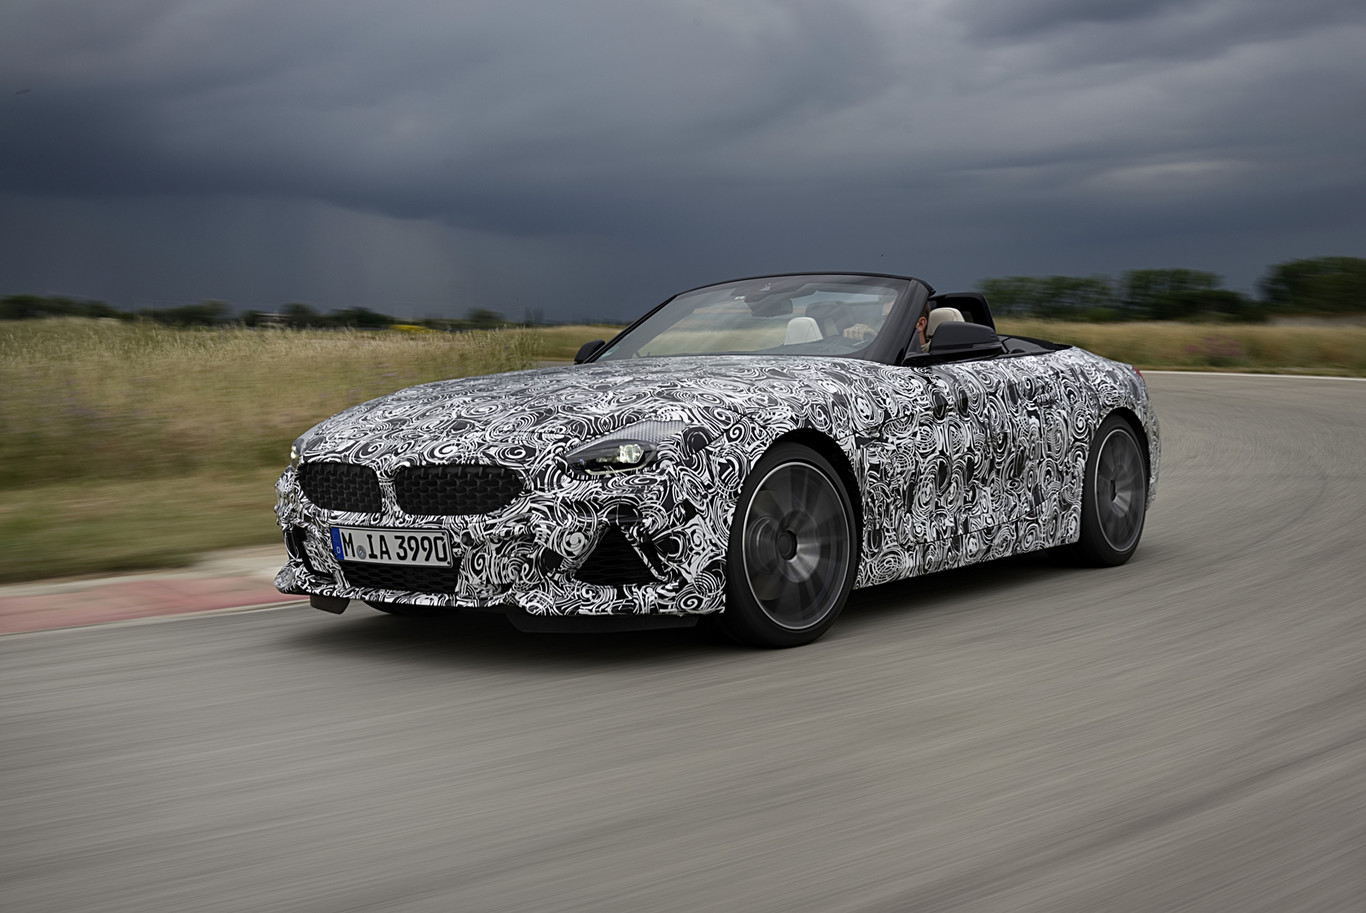 2021 BMW Z4 M Roadster Price, Design and Review